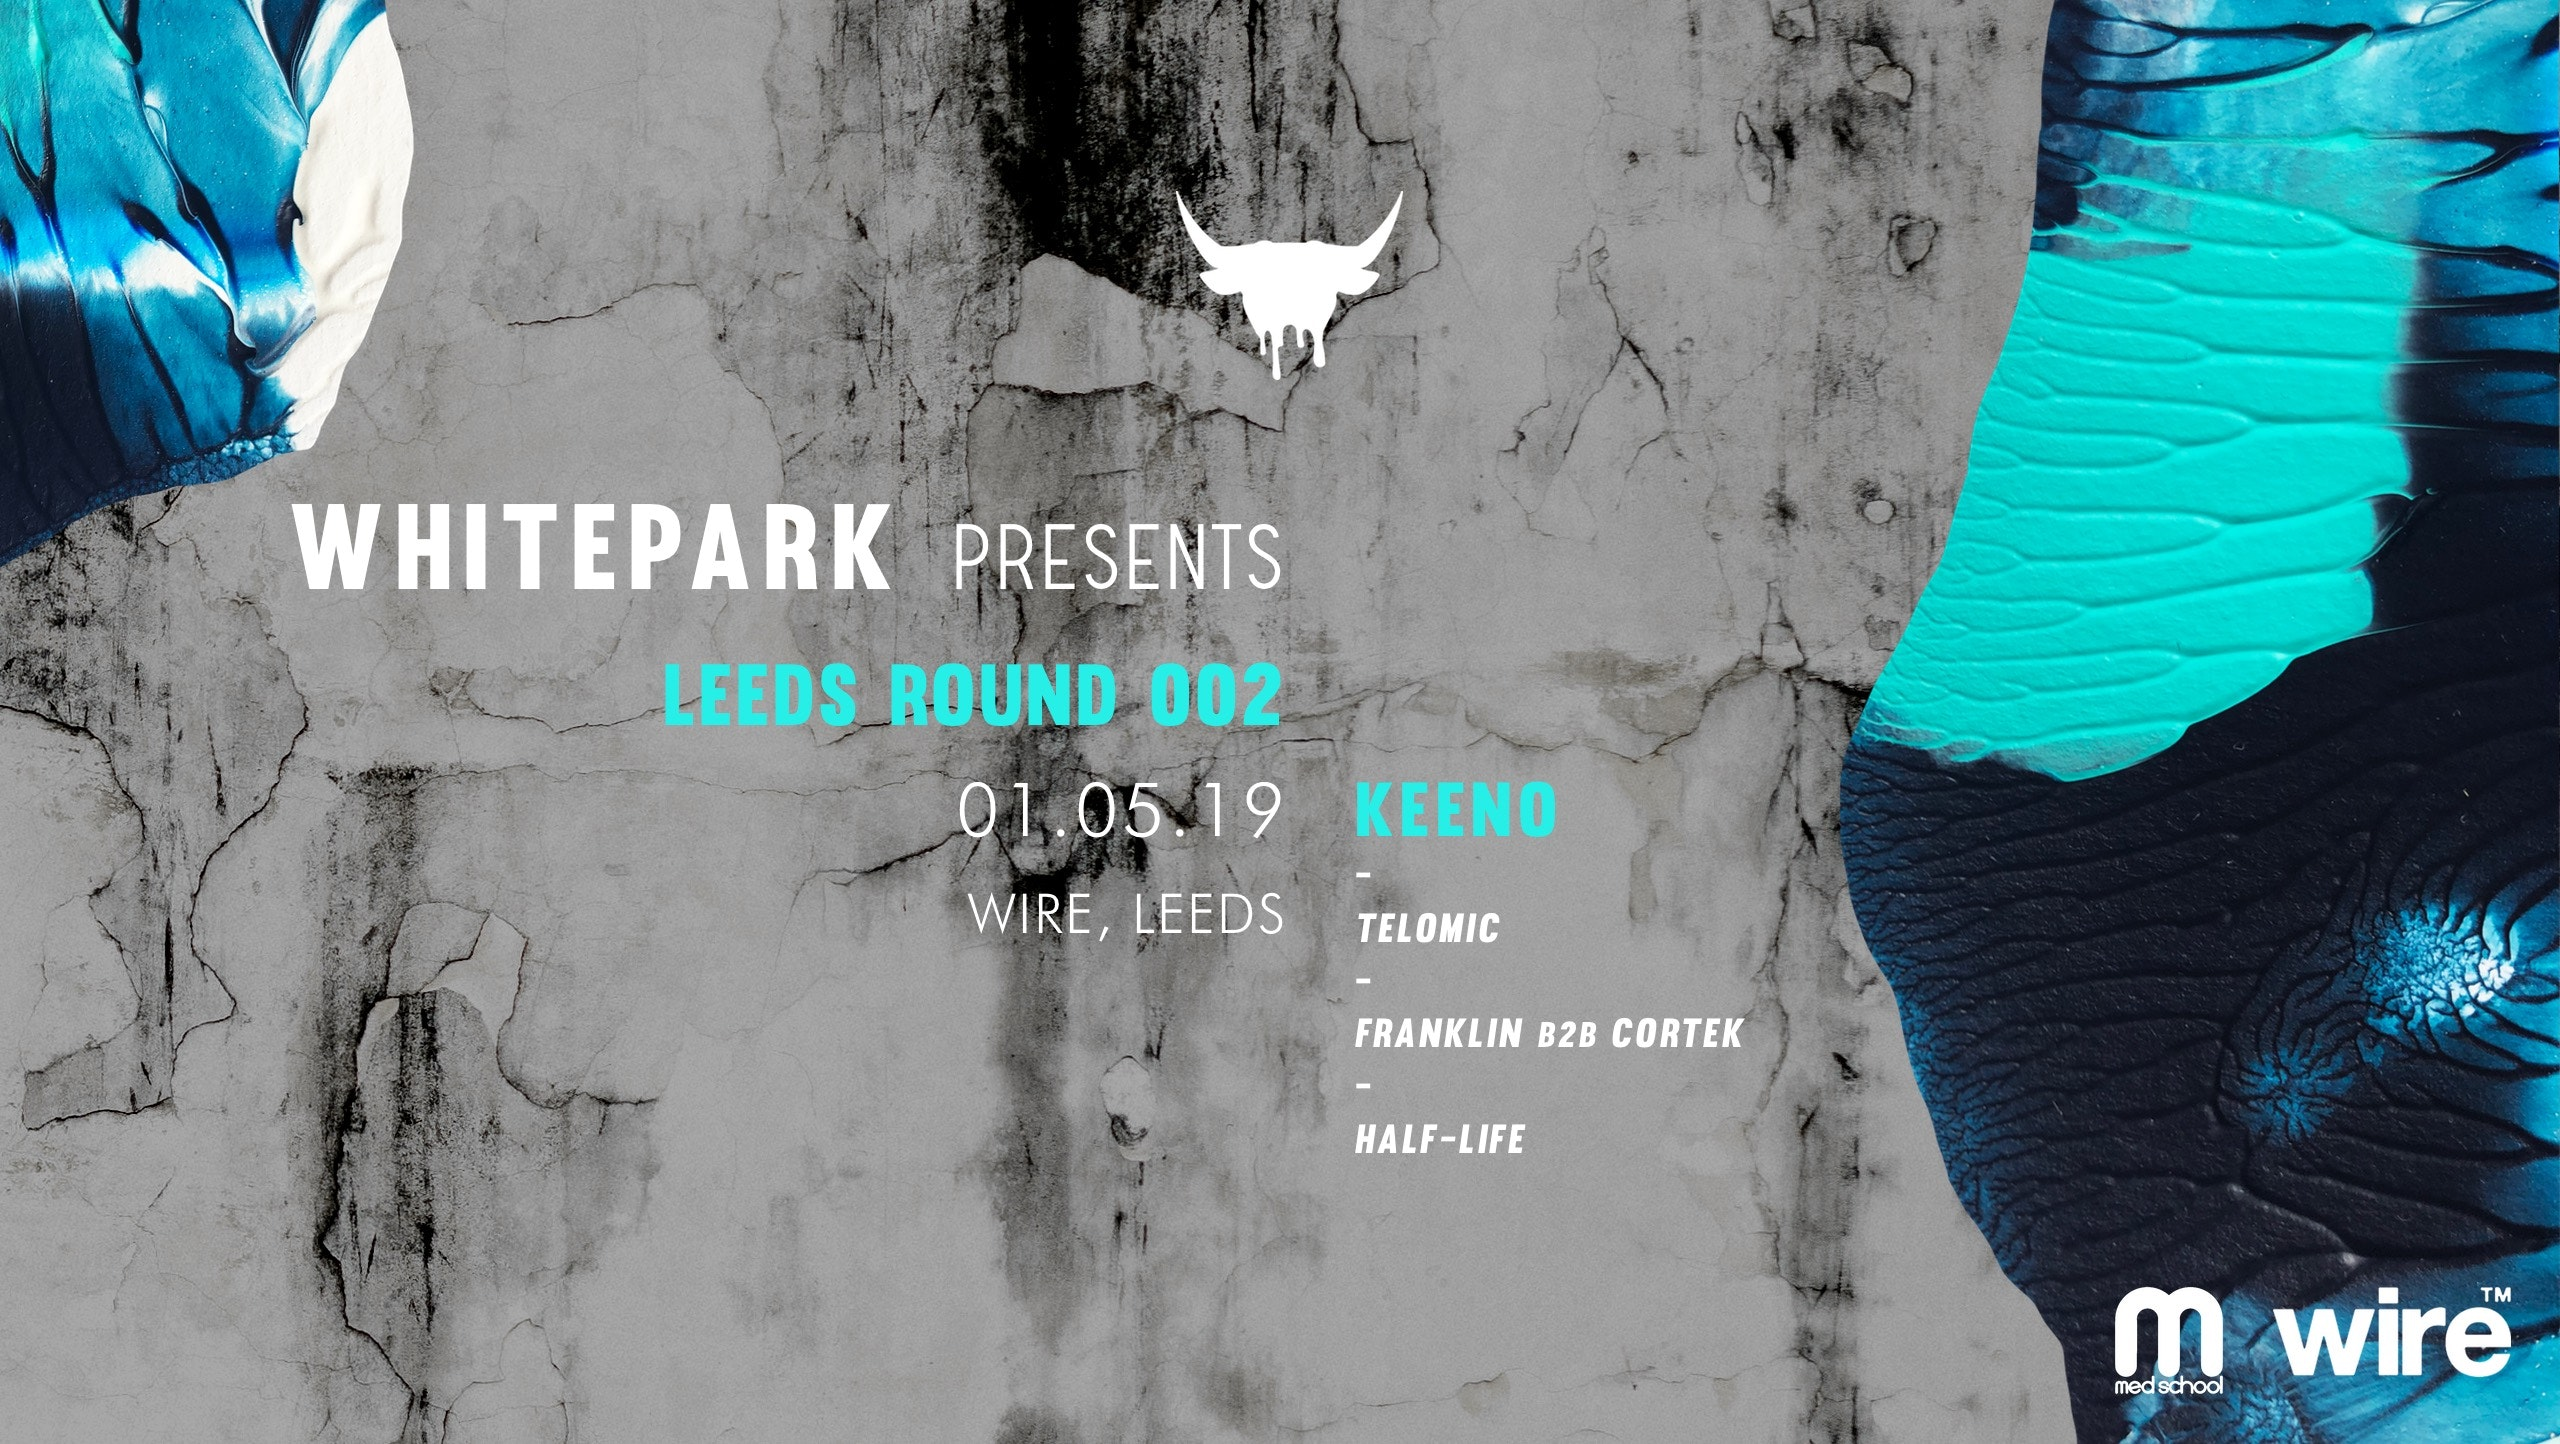 Whitepark Presents: Leeds Round 002 w/ Keeno, Telomic + more